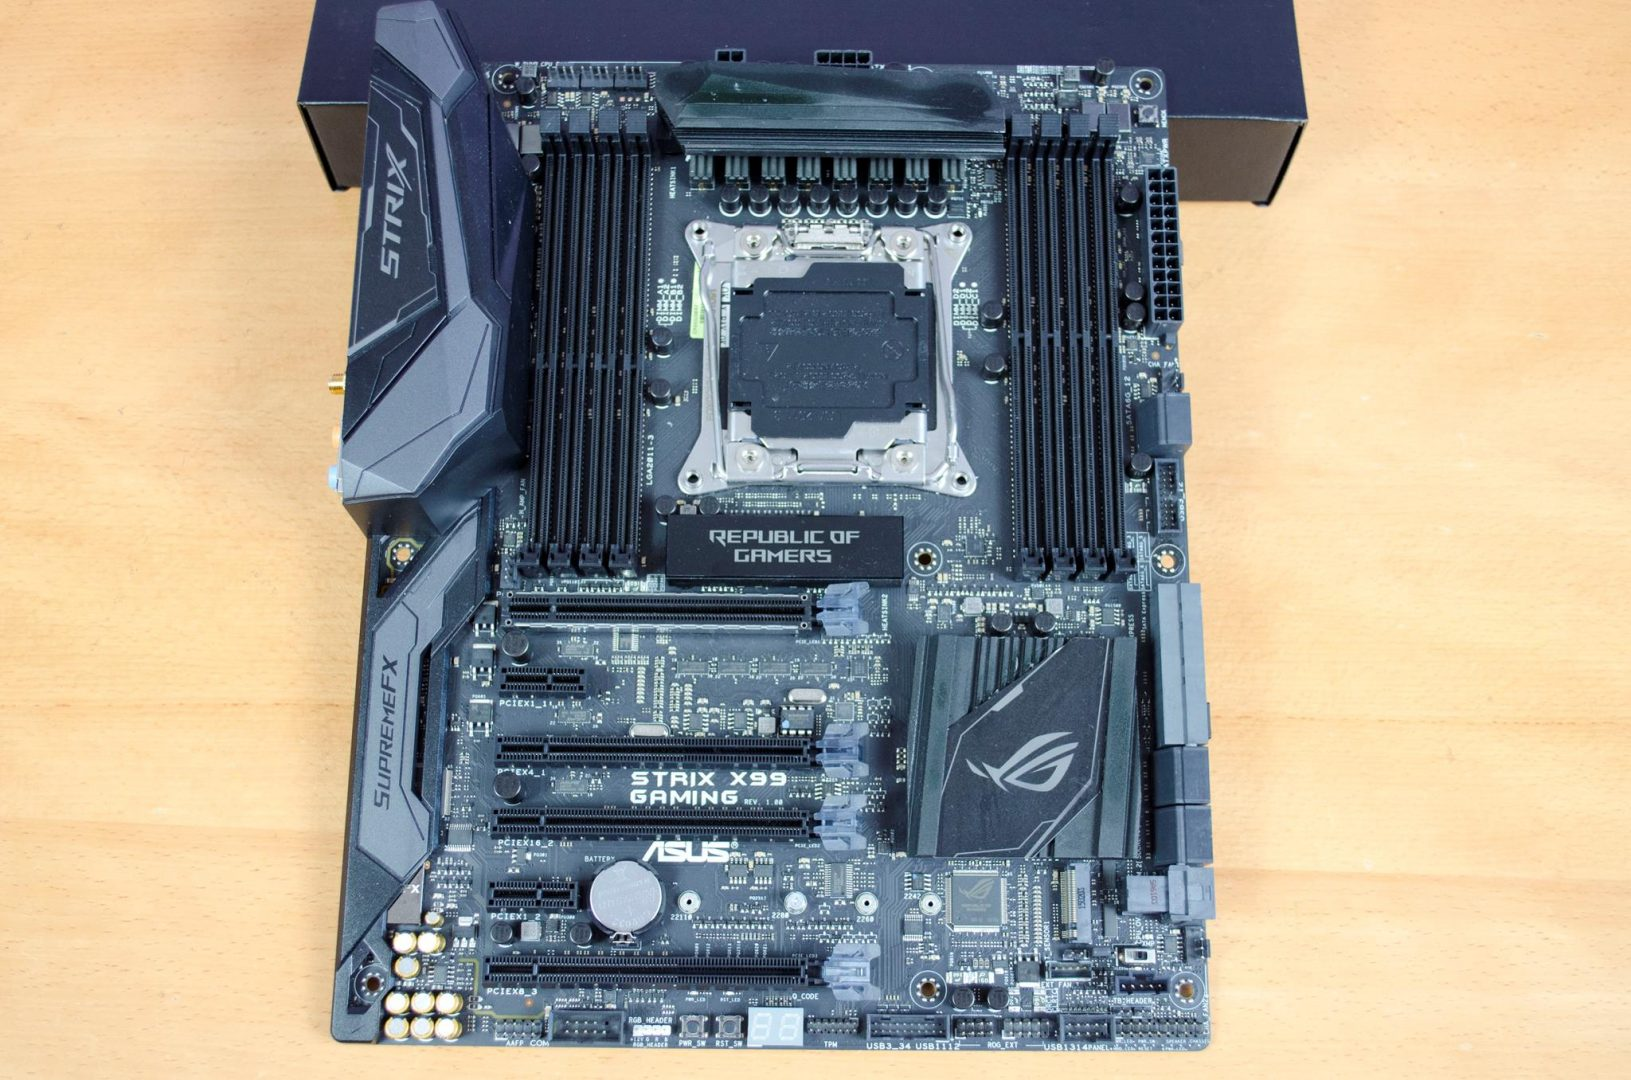 asus rog strix x99 gaming motherboard review_3